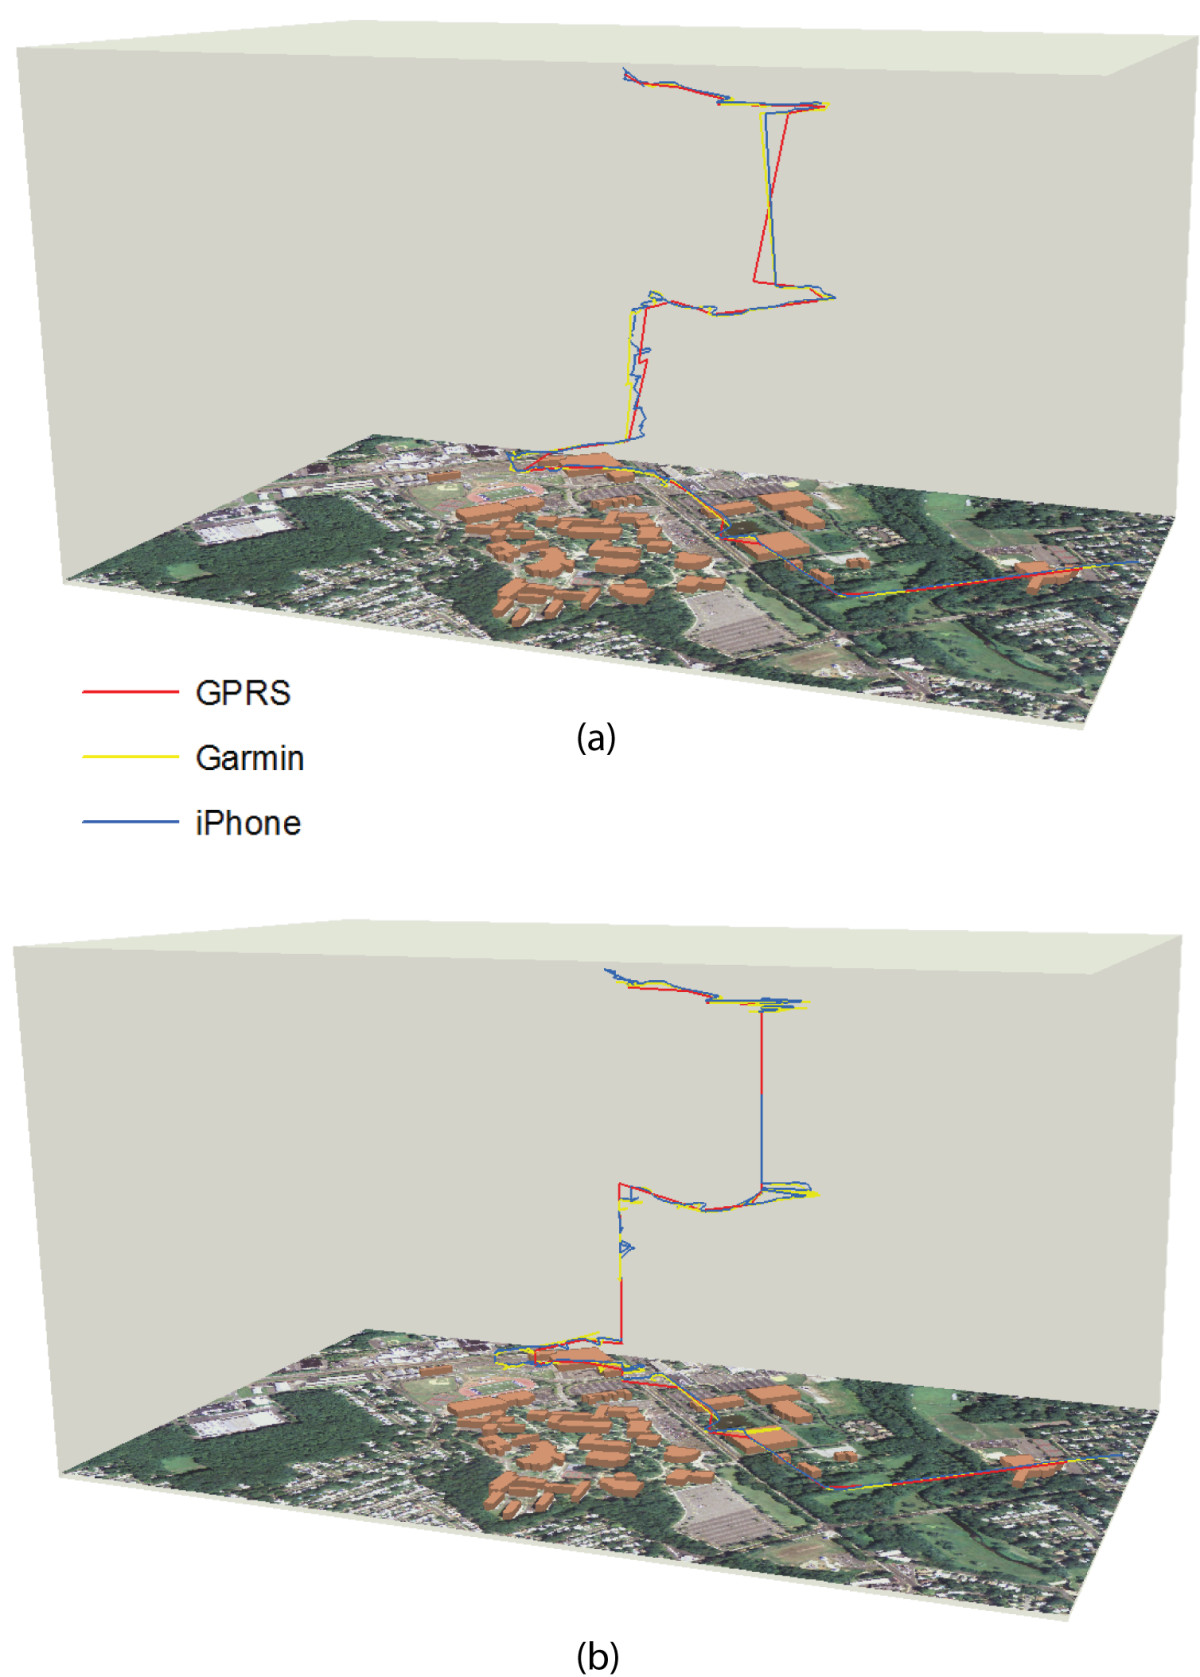 http://static-content.springer.com/image/art%3A10.1186%2F1476-072X-12-6/MediaObjects/12942_2012_Article_523_Fig4_HTML.jpg